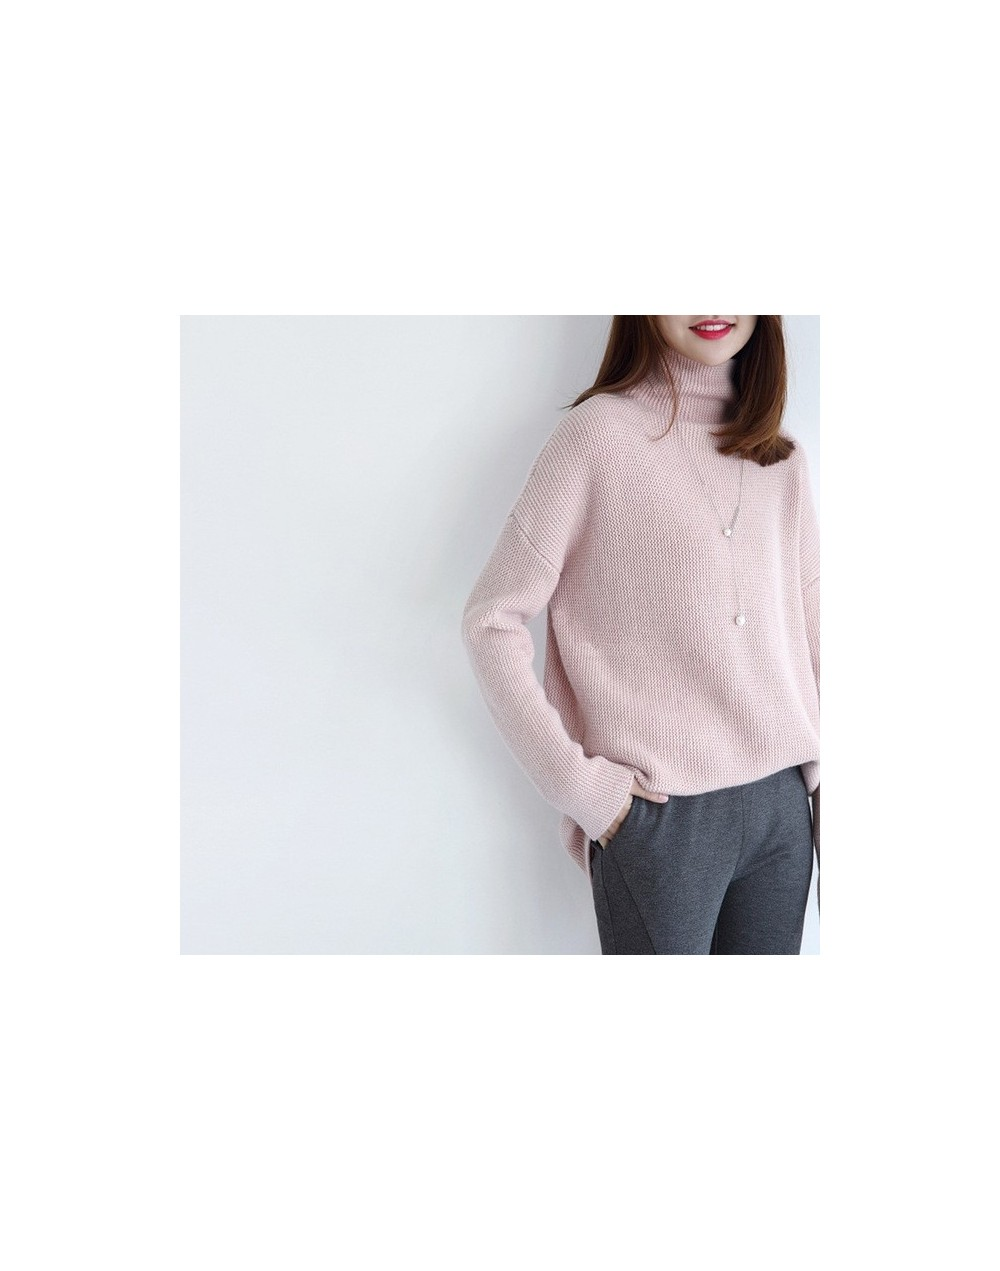 2017 Autumn and Winter New High-Necked Cashmere Sweater Woman Loose Thick Pullover Wild casual Knitted Sweater - Pink - 4J39...